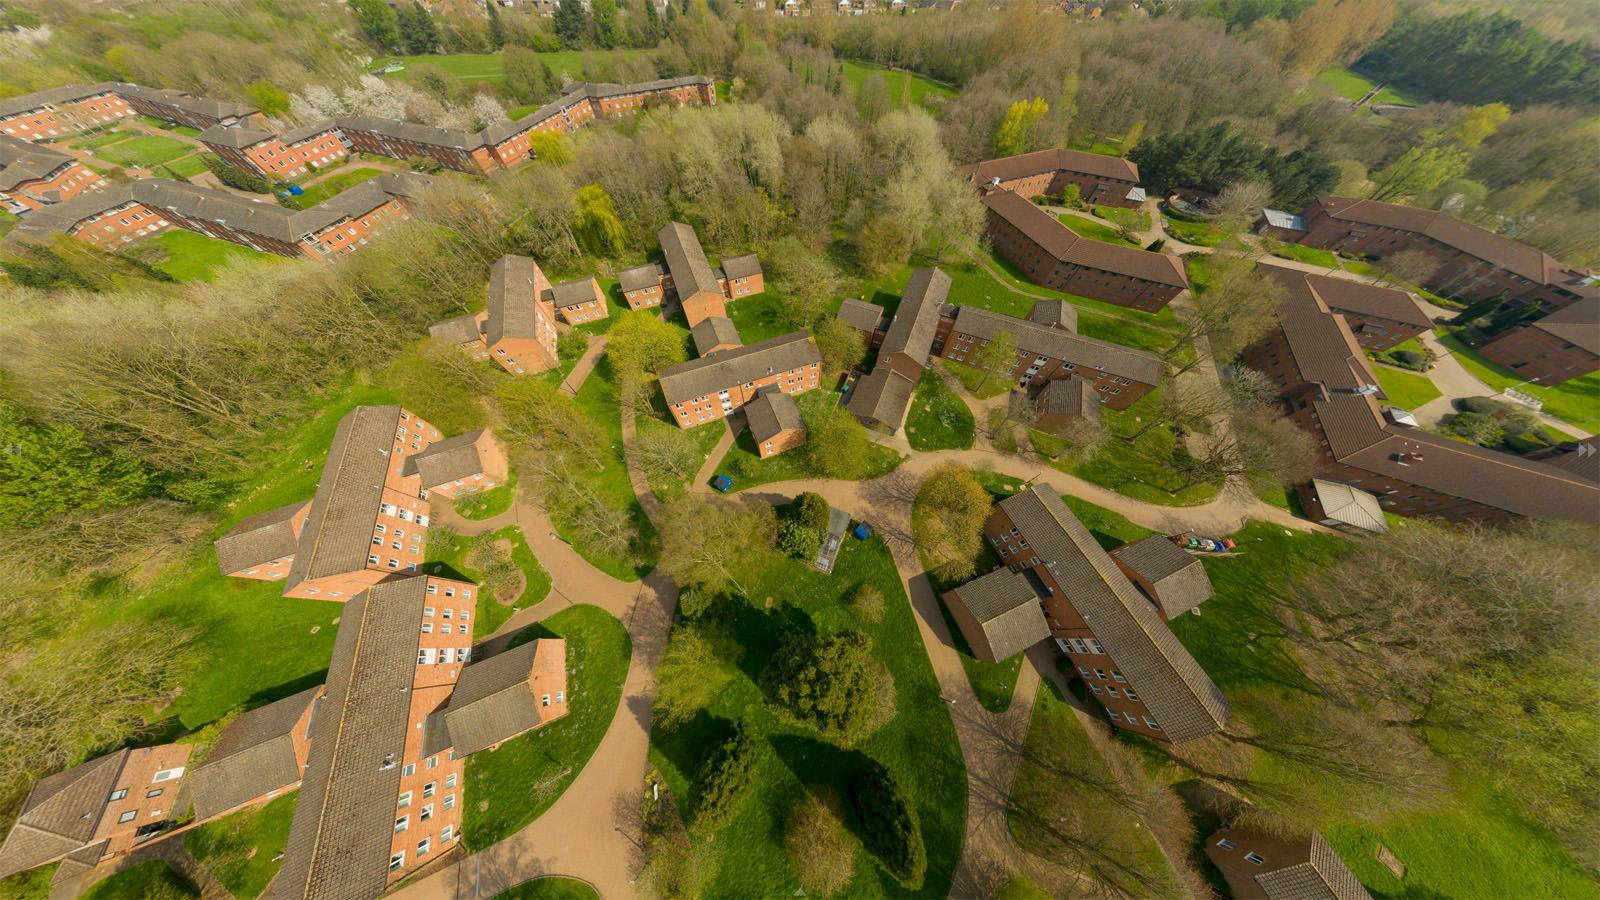 Still taken from the aerial virtual Tour at the University of Warwick